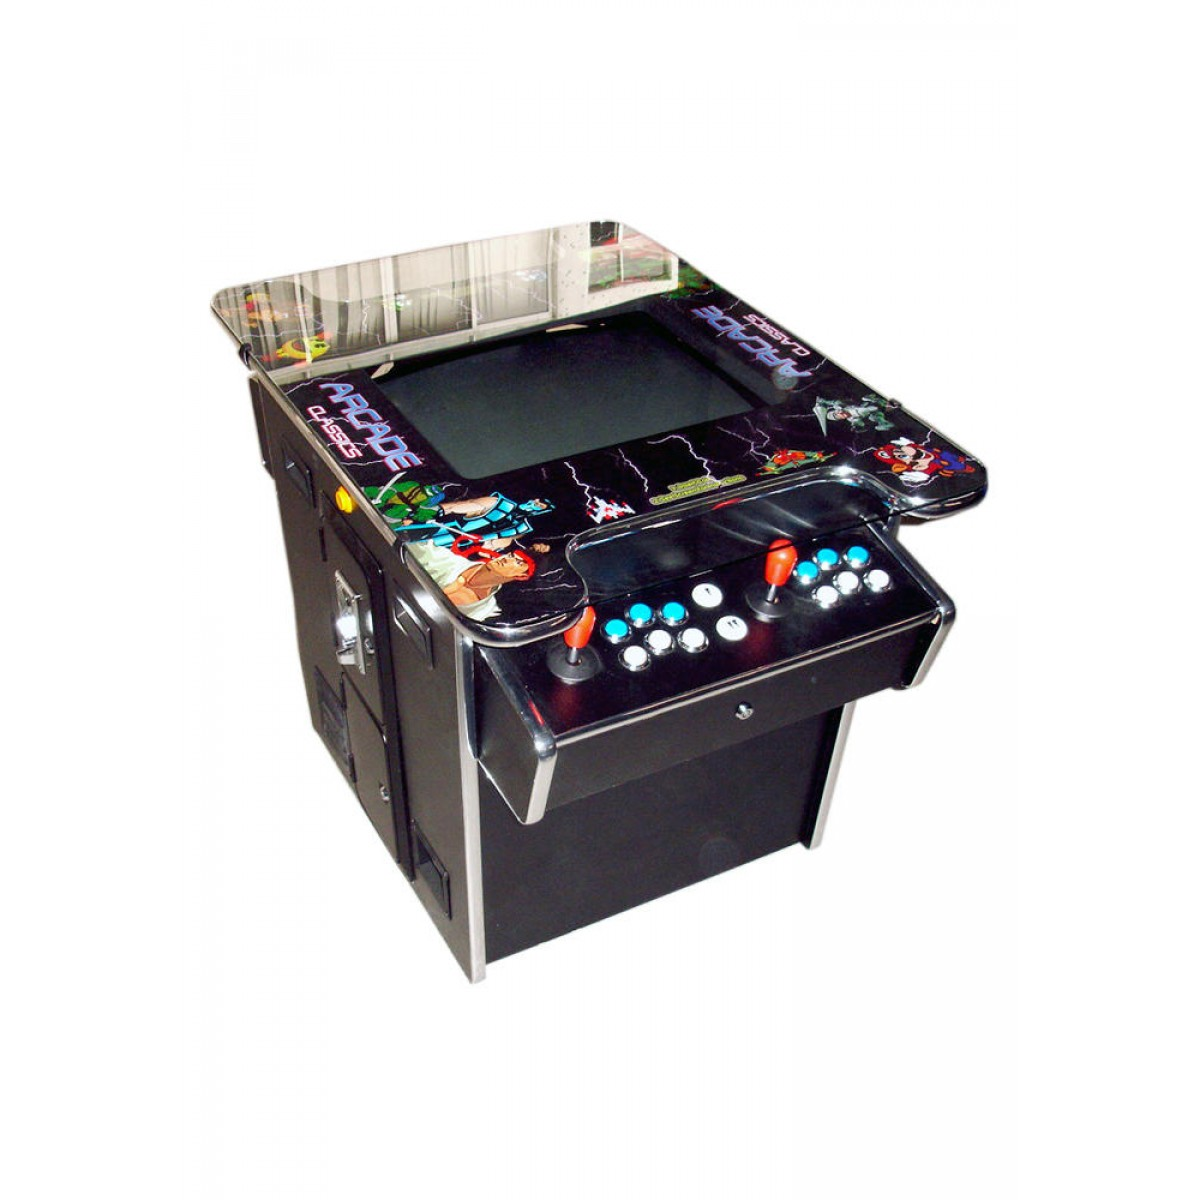 Arcade Cocktail Table Arcade Tables Gaming Man Zone Gift Ideas Memorabilia Man Cave